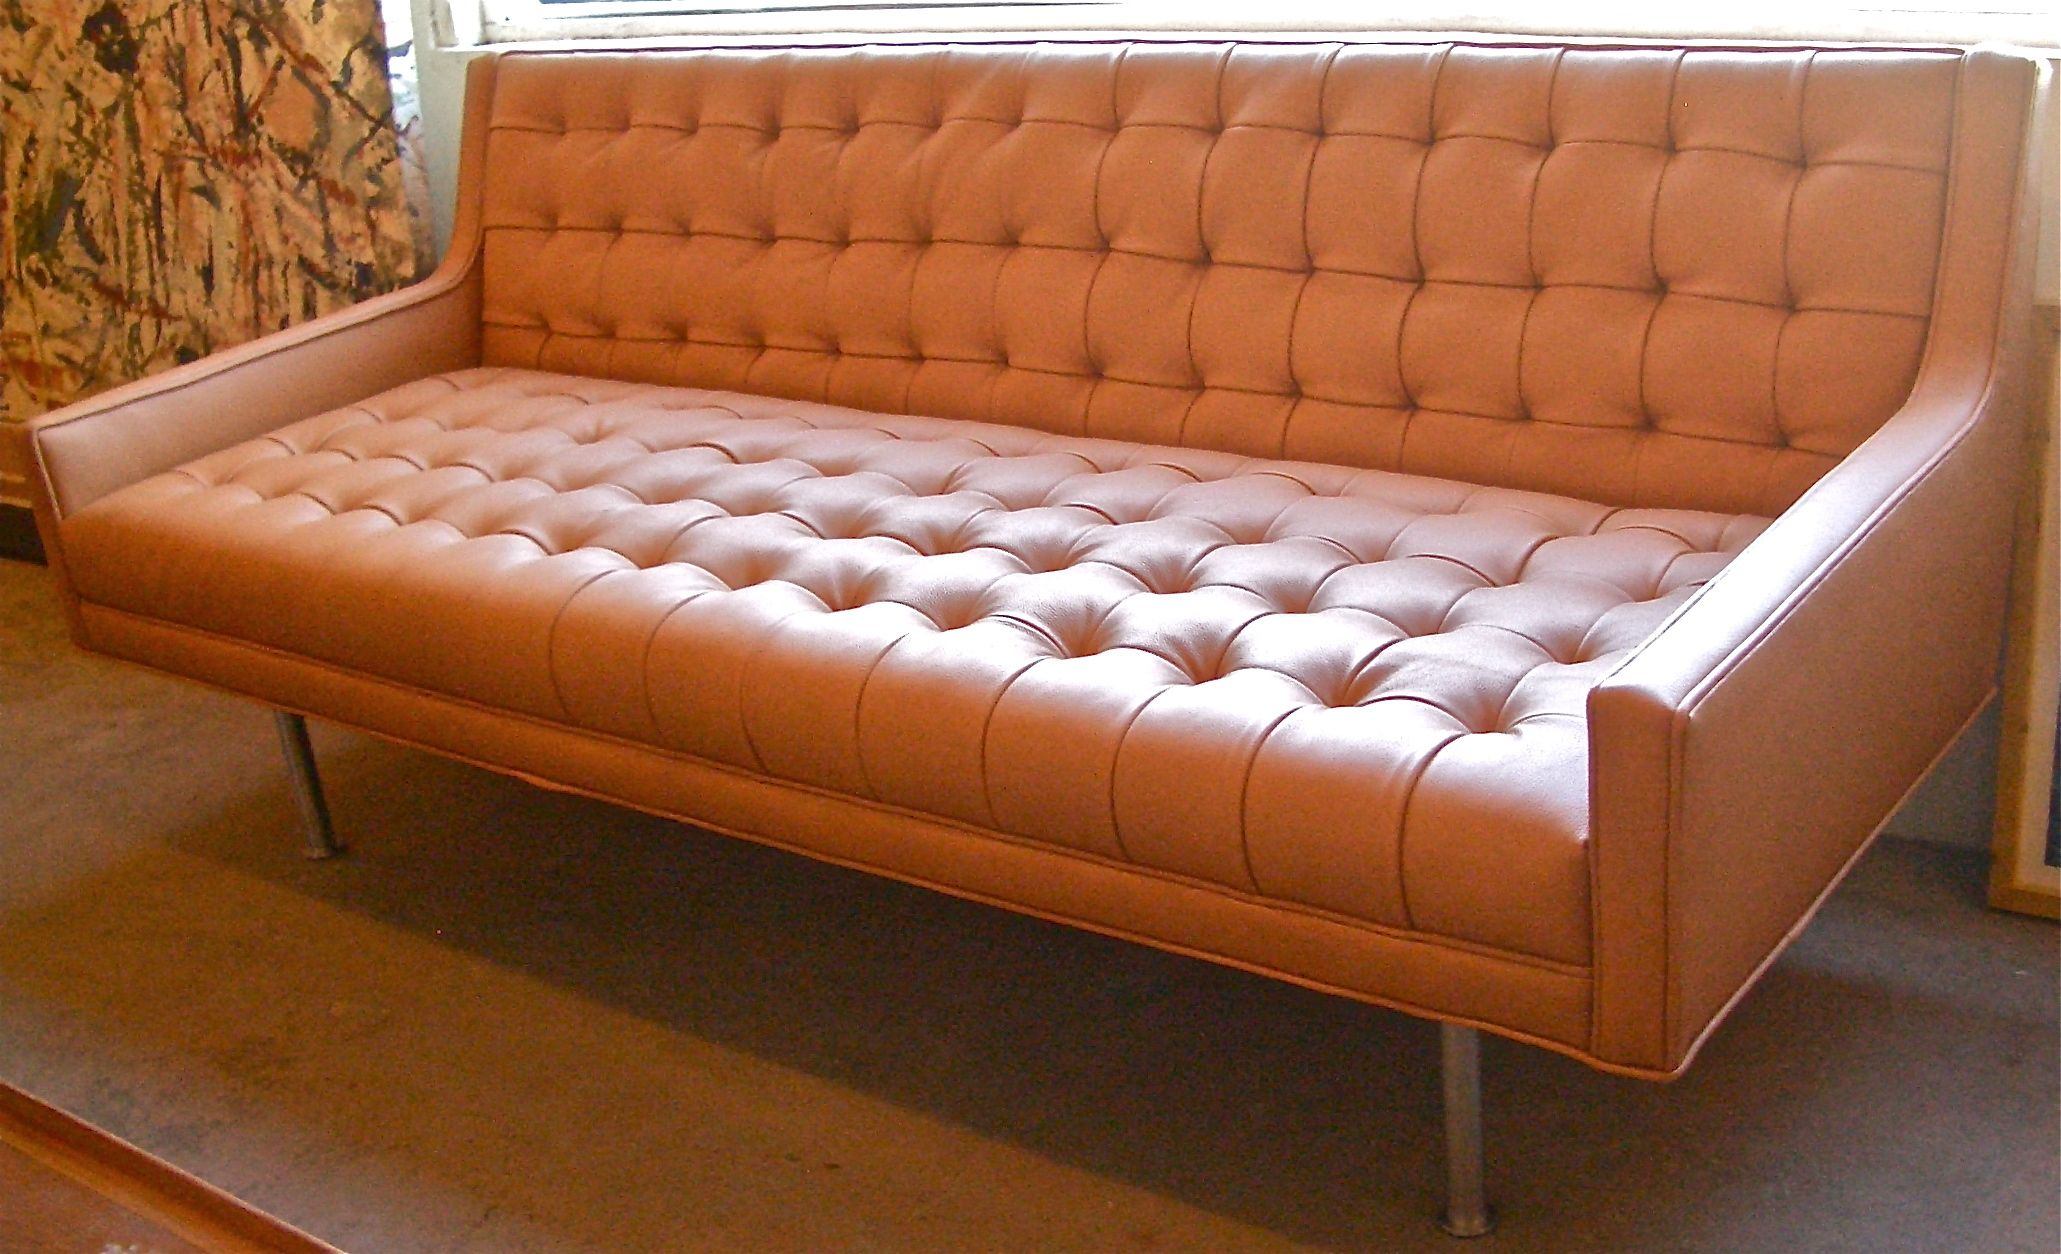 Good Looking Orange Leather Sofas You Must Have Fetching Reclining Sofa With Ontufted Backrest And Seat Cushion Also Metal Legs For